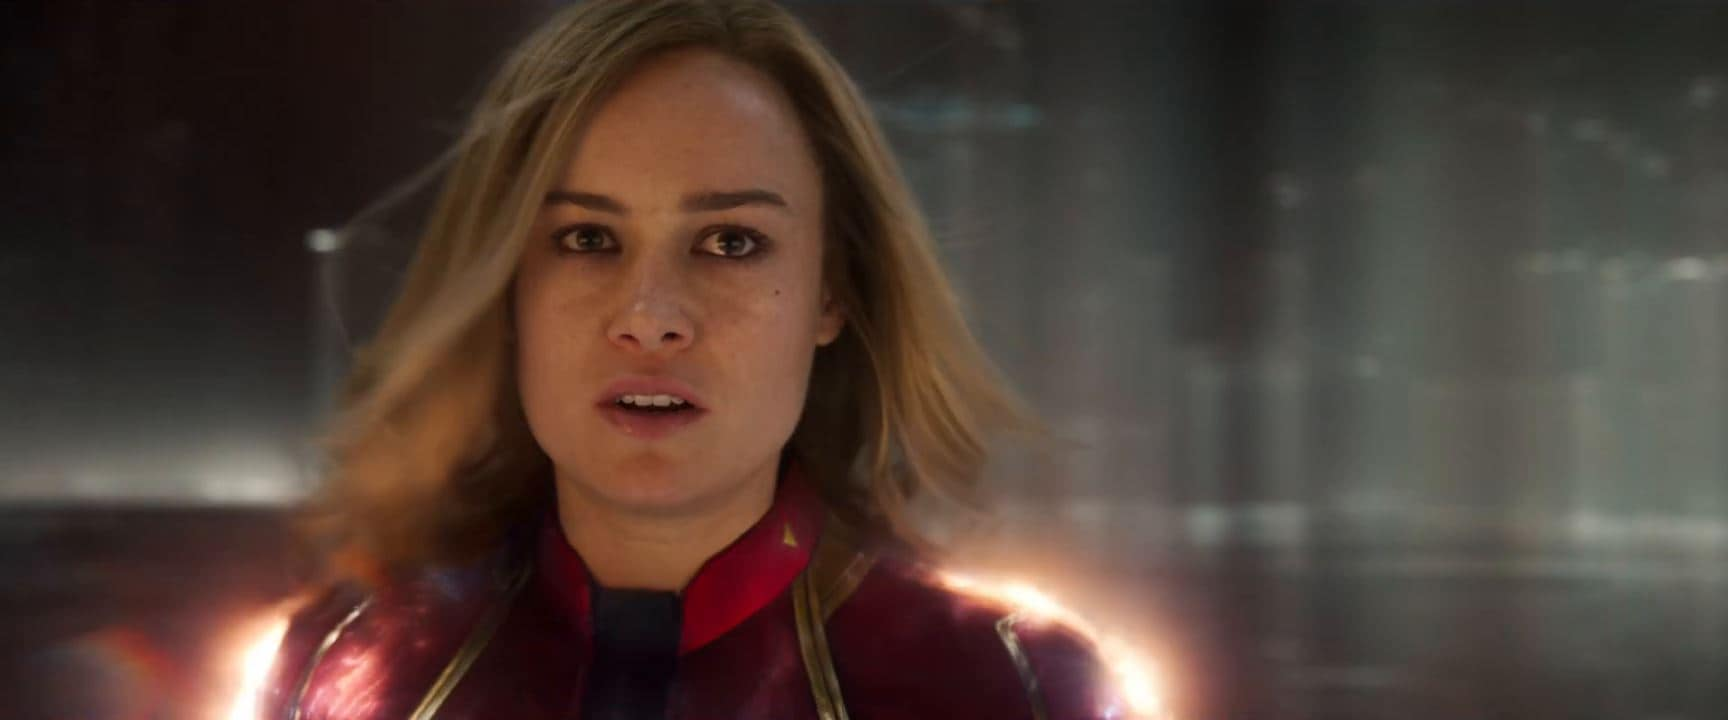 Captain Marvel's New Trailer Shows Off Brie Larson at Her Superhuman Best